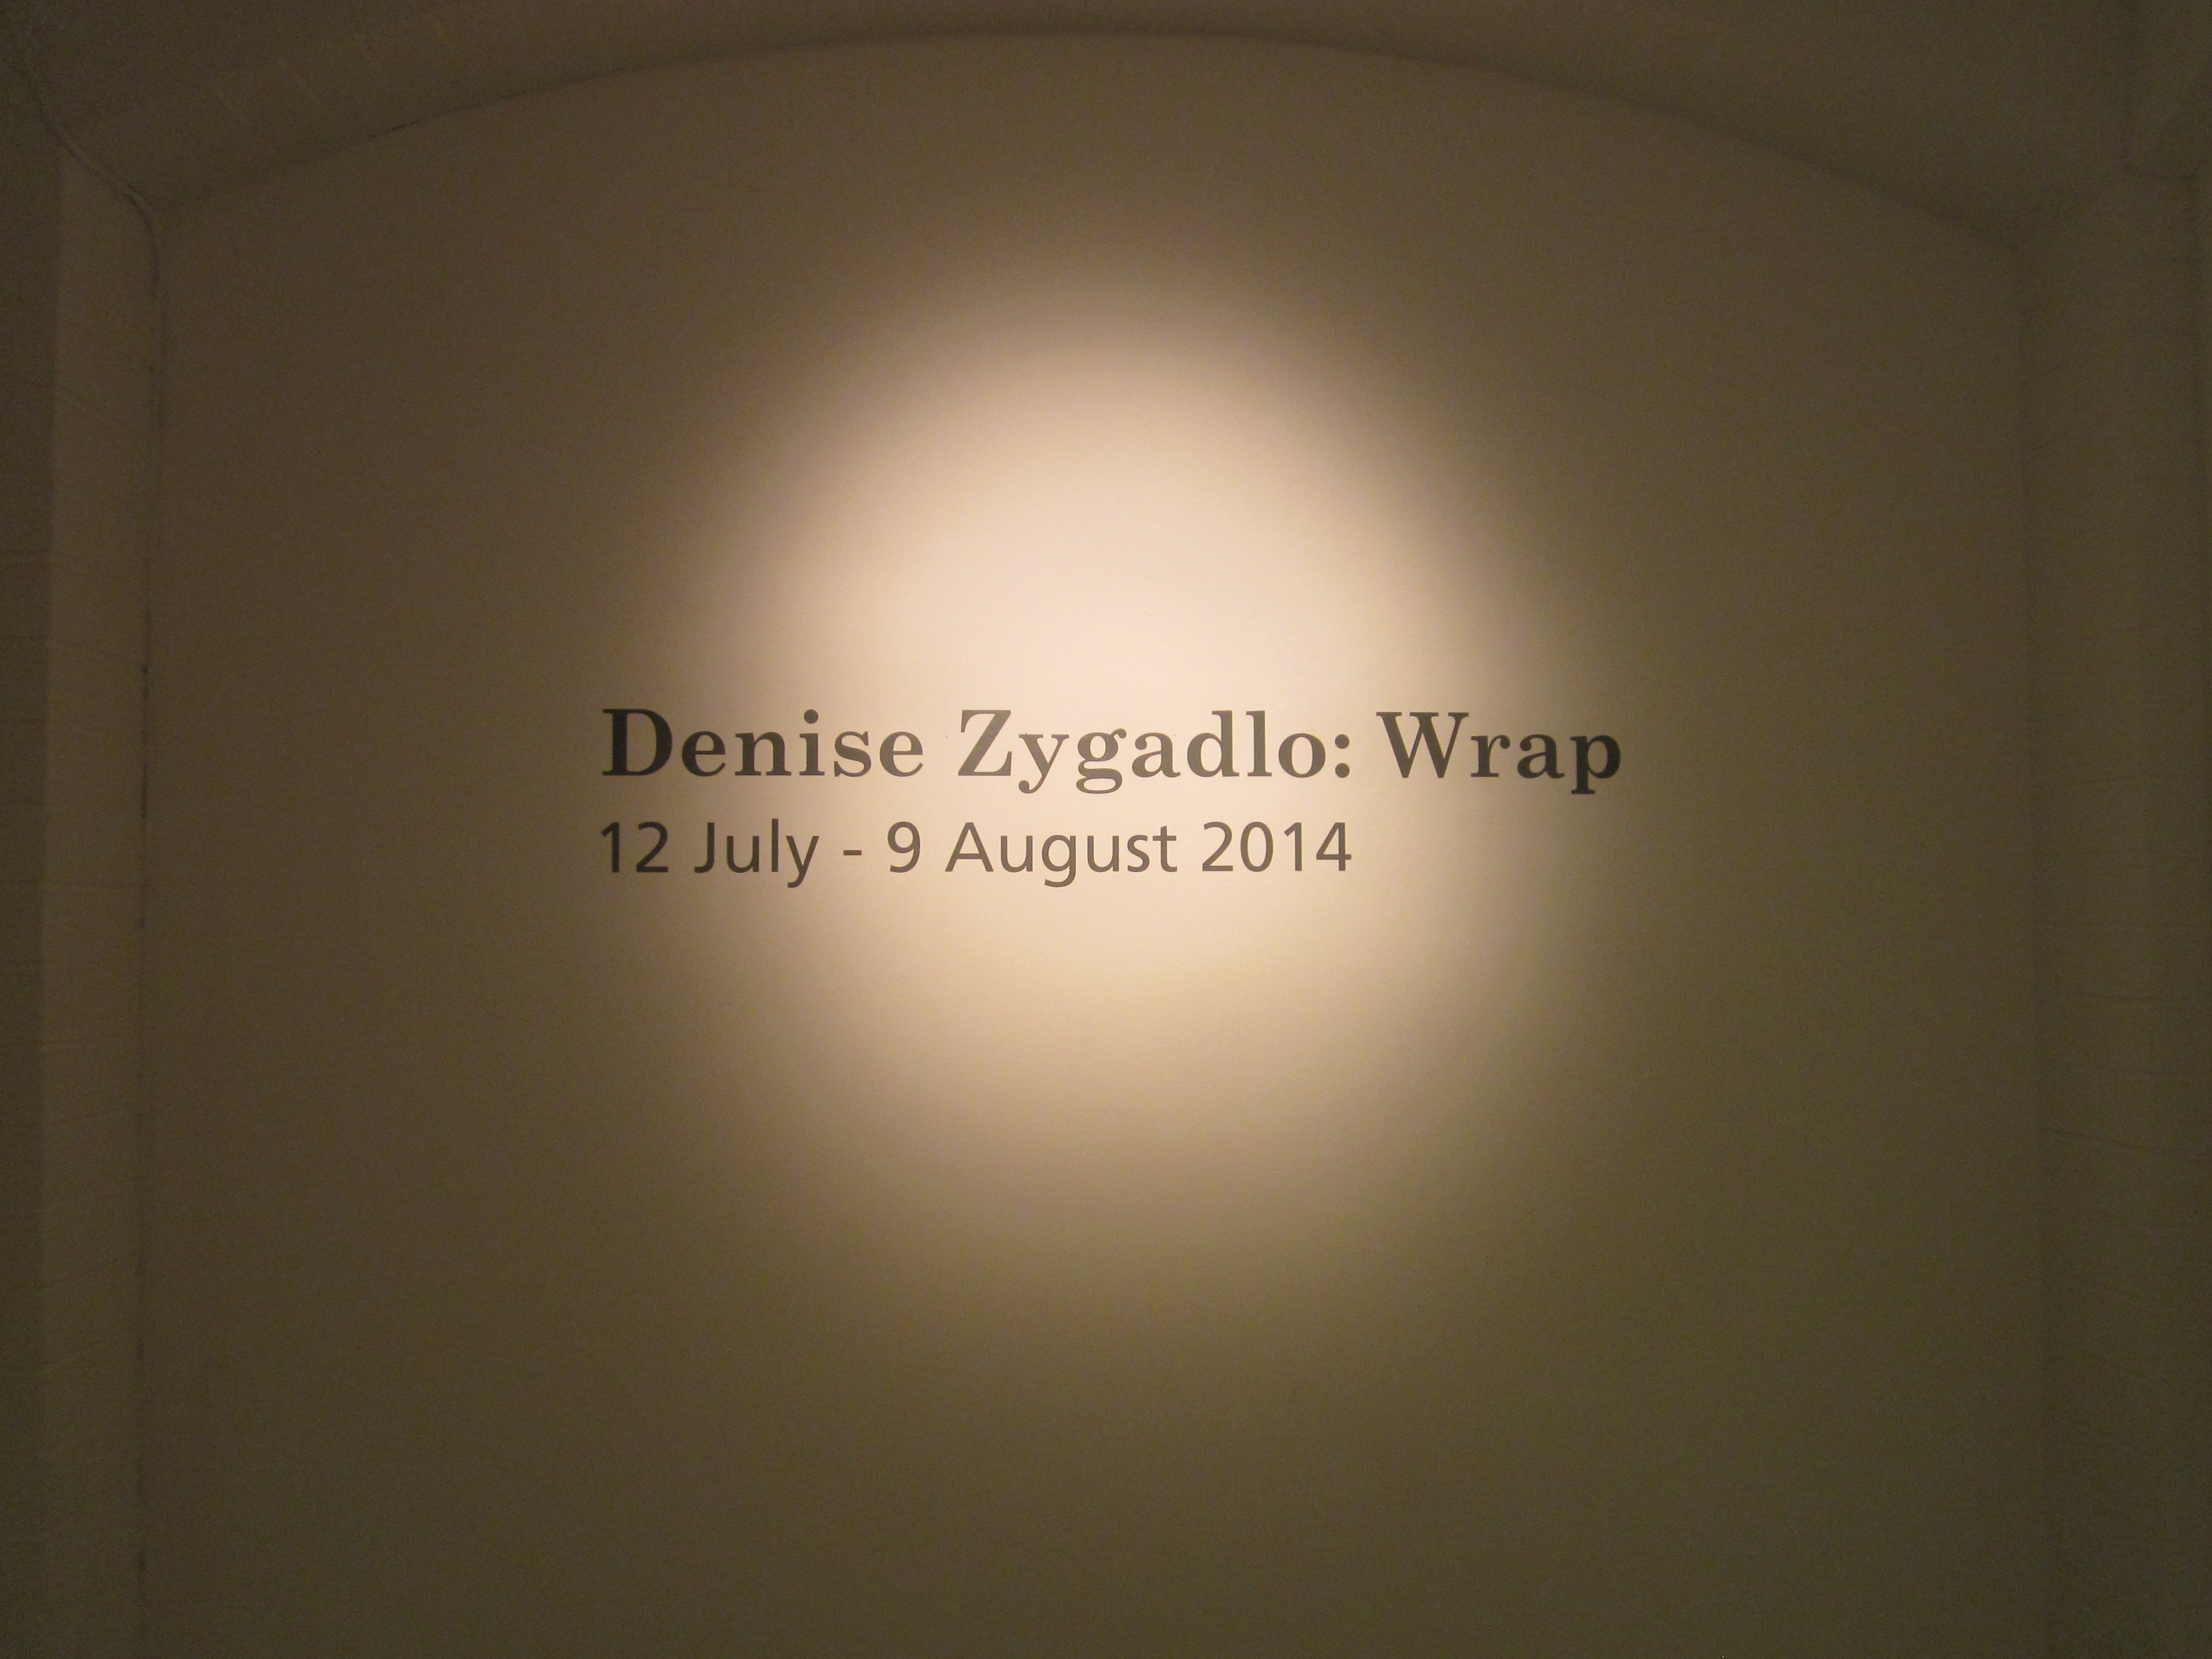 WRAP - a saunter through Gallery 2 video